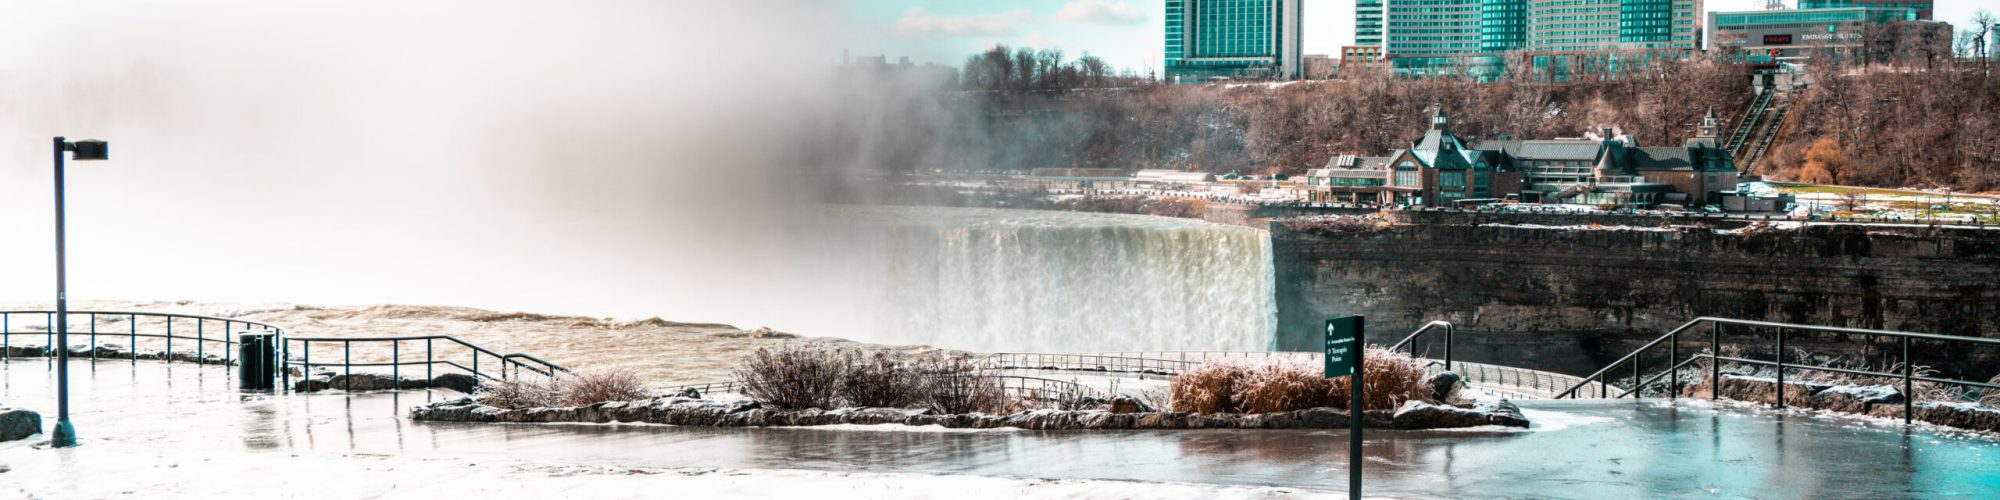 How to Plan a Winter Weekend Getaway to Niagara Falls, New York